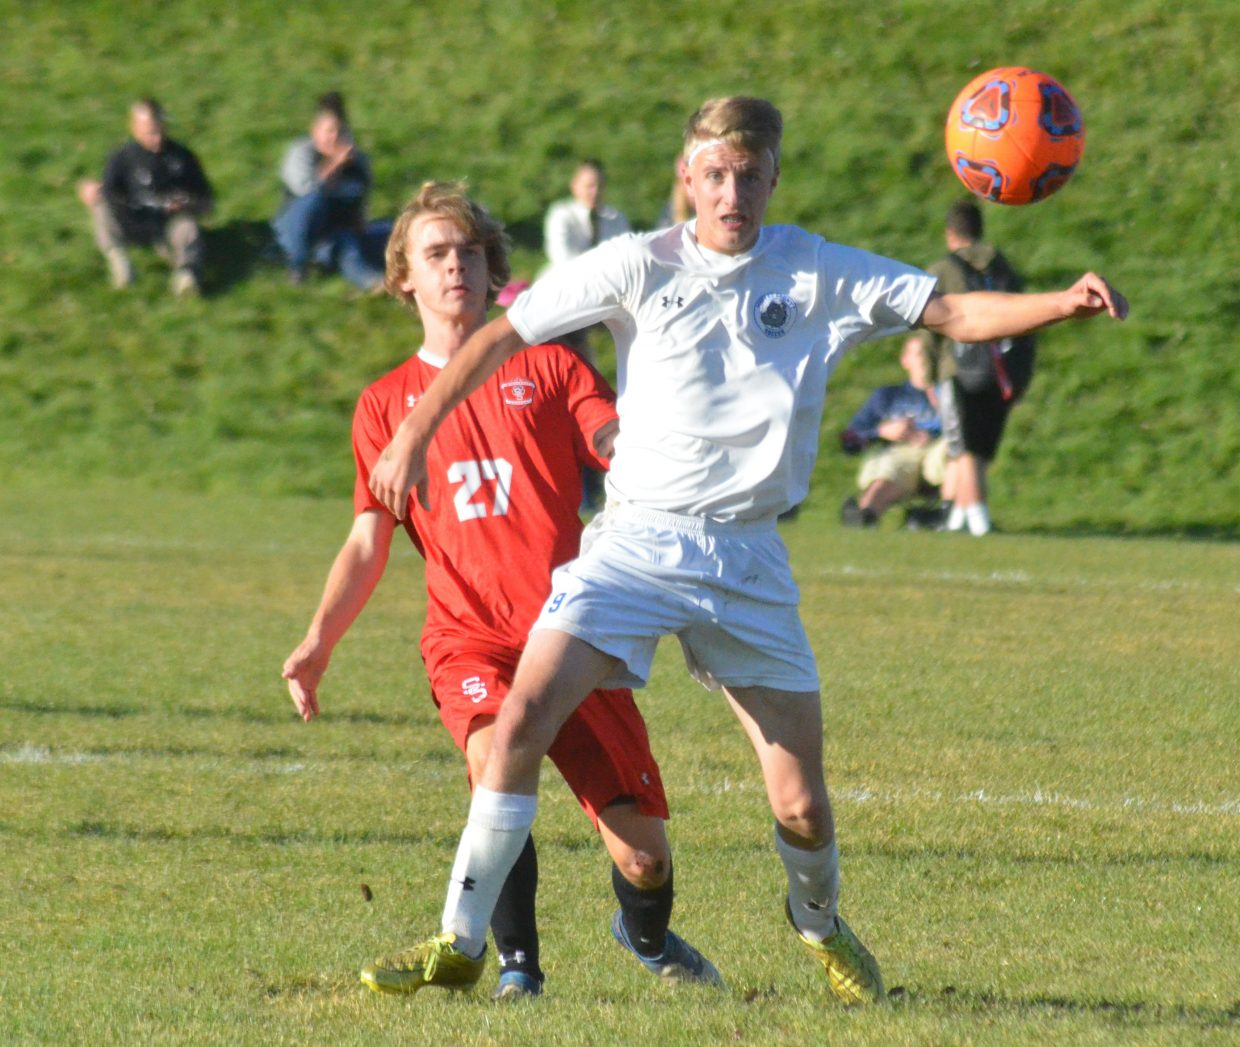 Moffat County High School senior Tristen Walls knocks away the ball from the Steamboat Springs opposition.